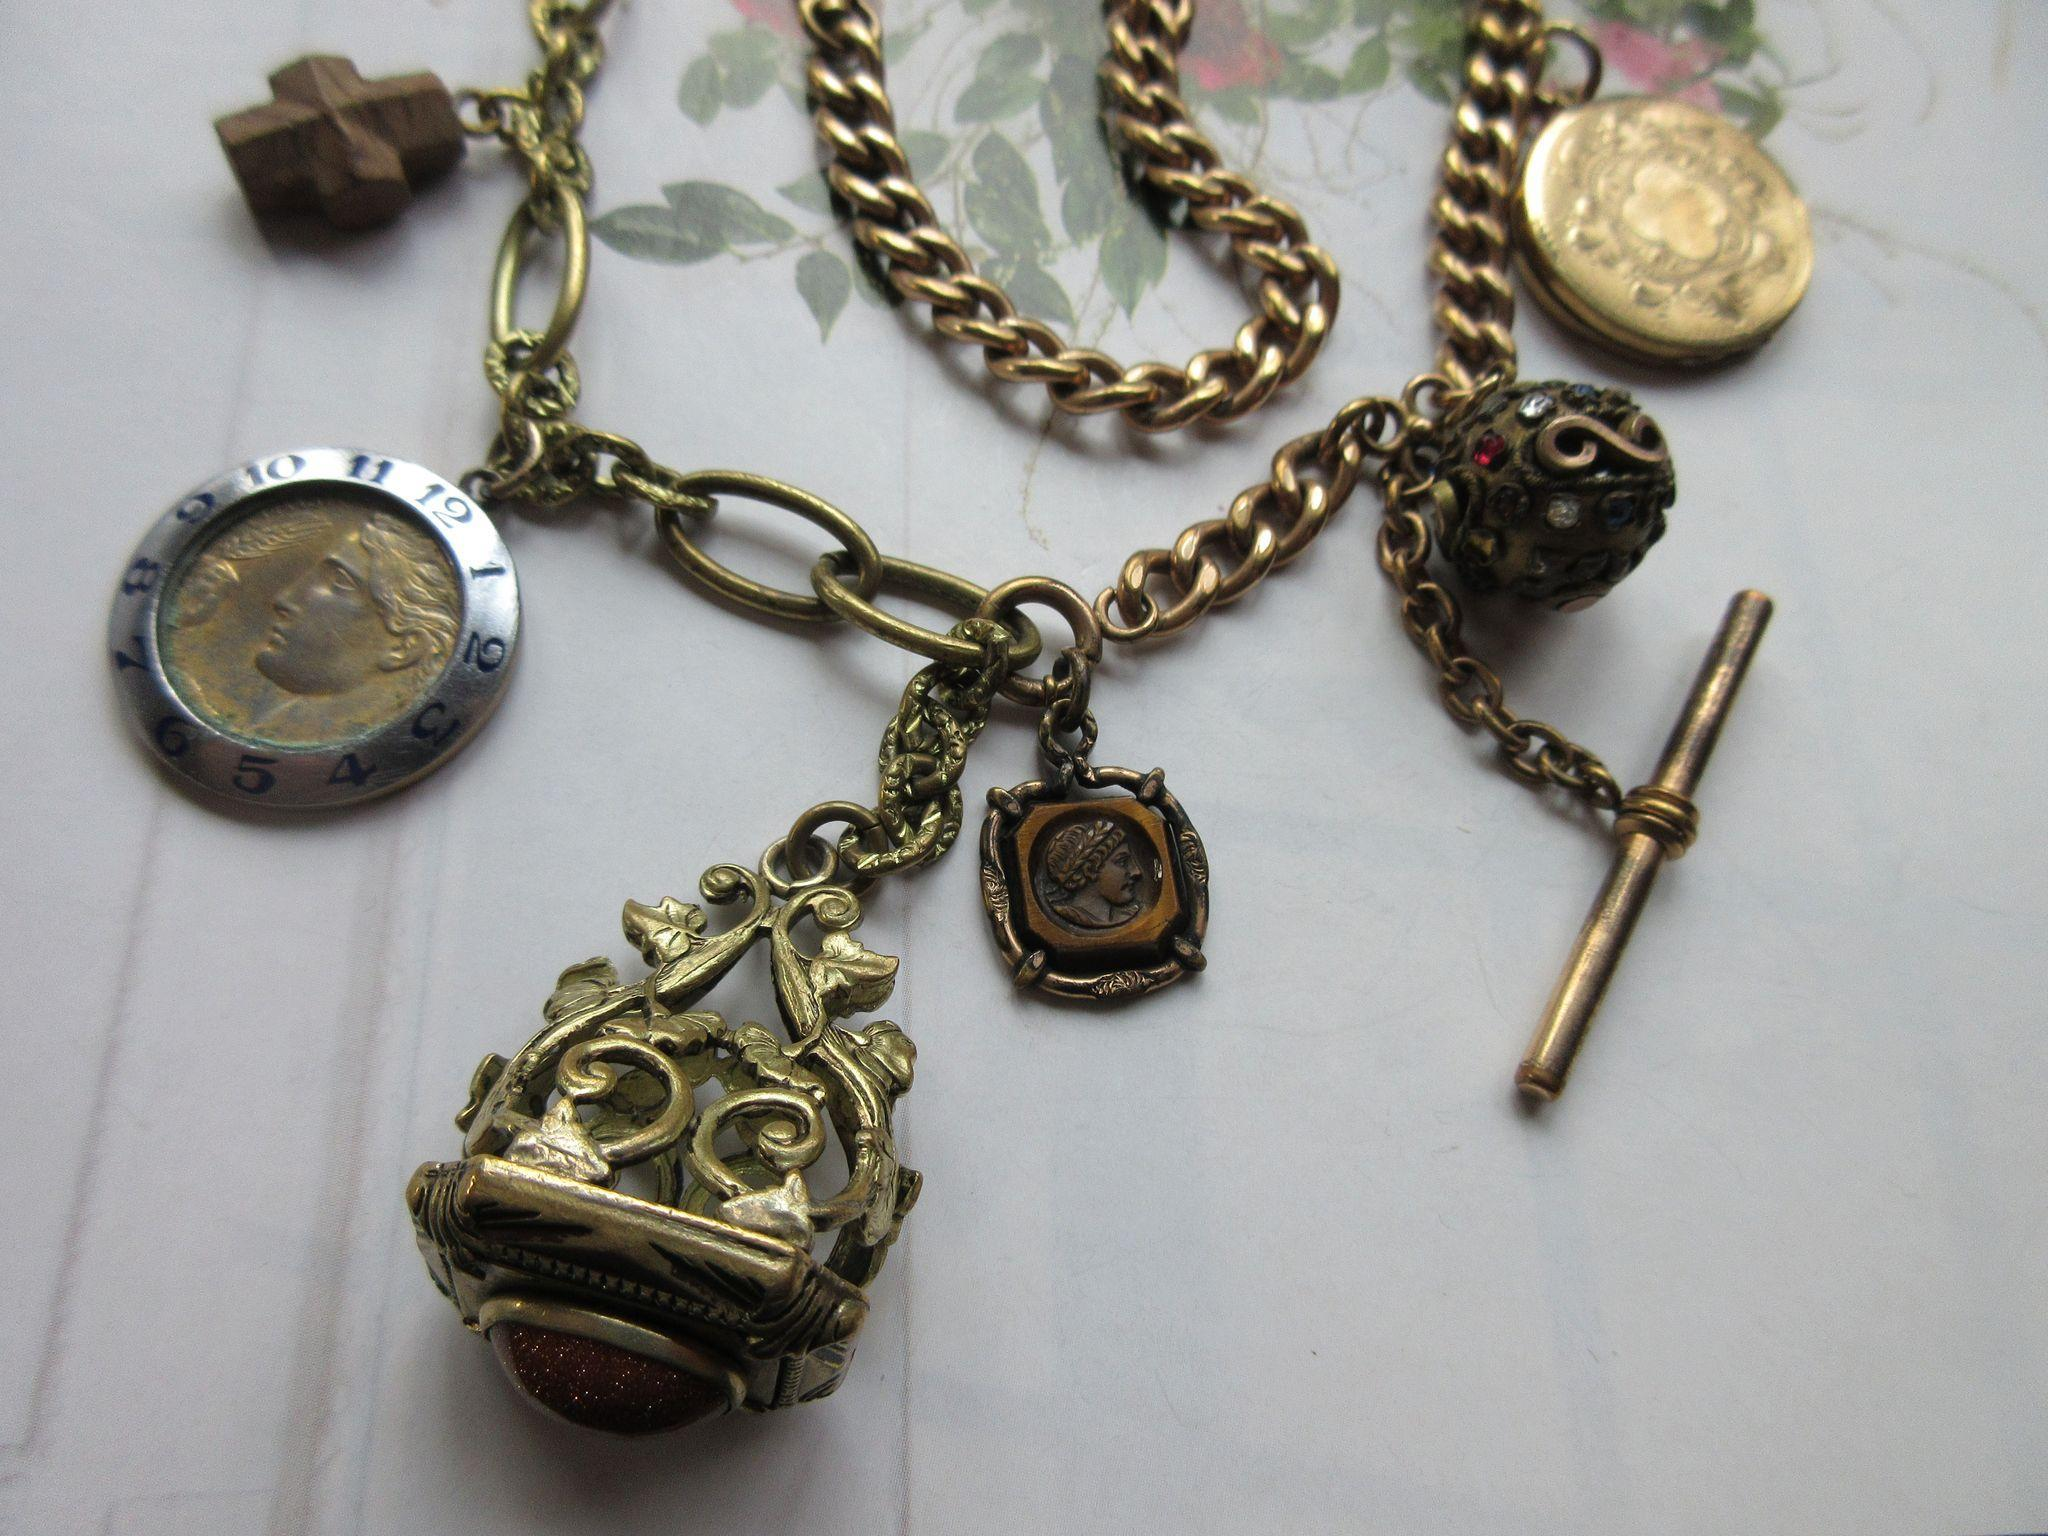 Victorian Watch Chain Fob Necklace, Charm Necklace